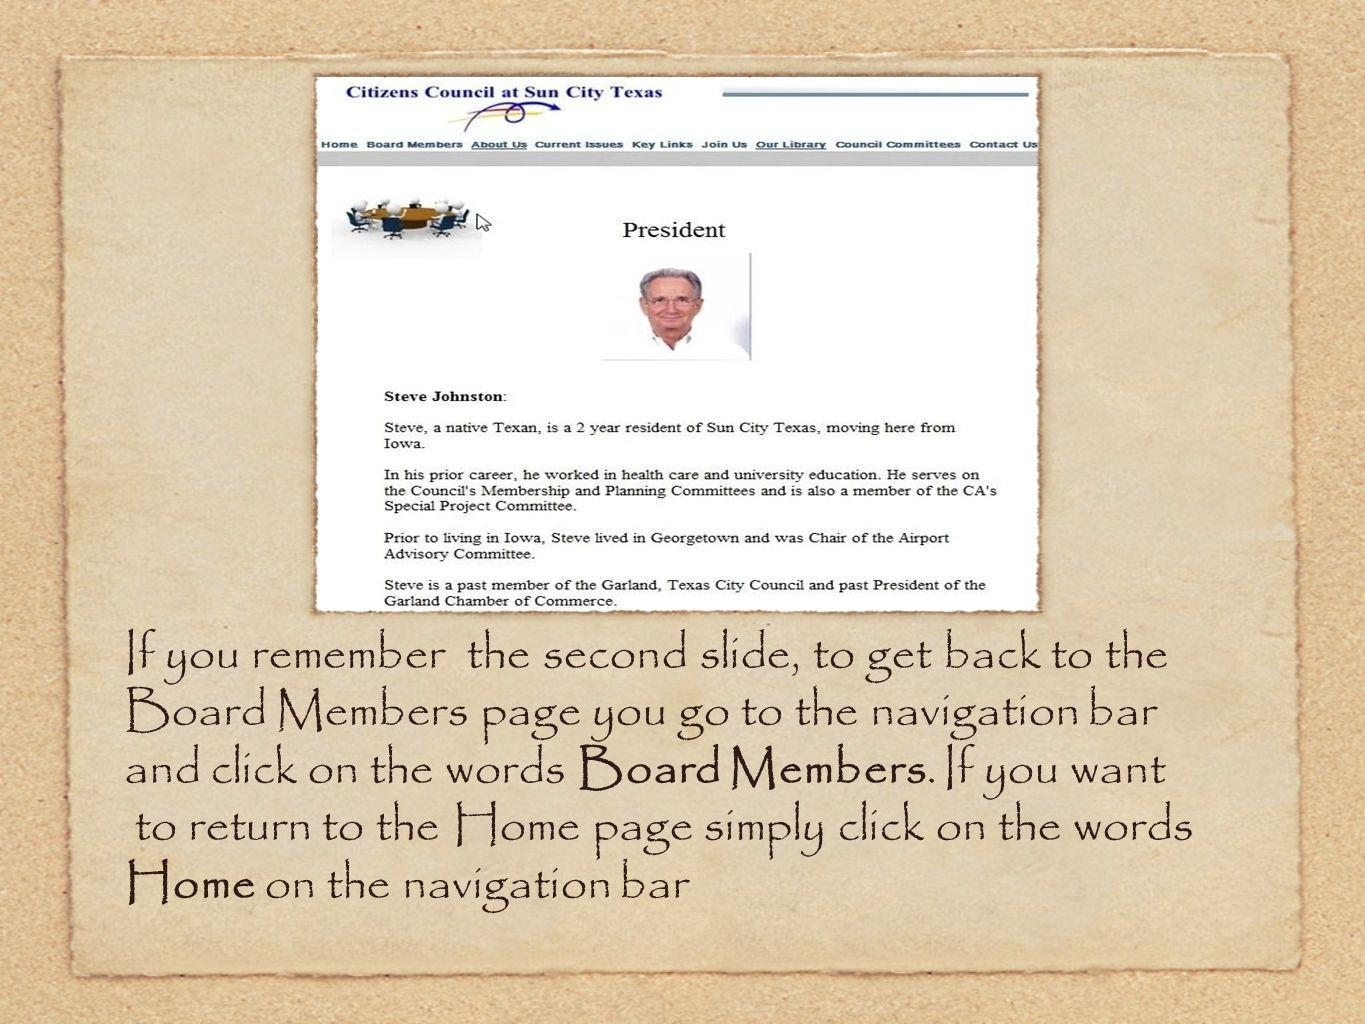 If you remember the second slide, to get back to the Board Members page you go to the navigation bar and click on the words Board Members.